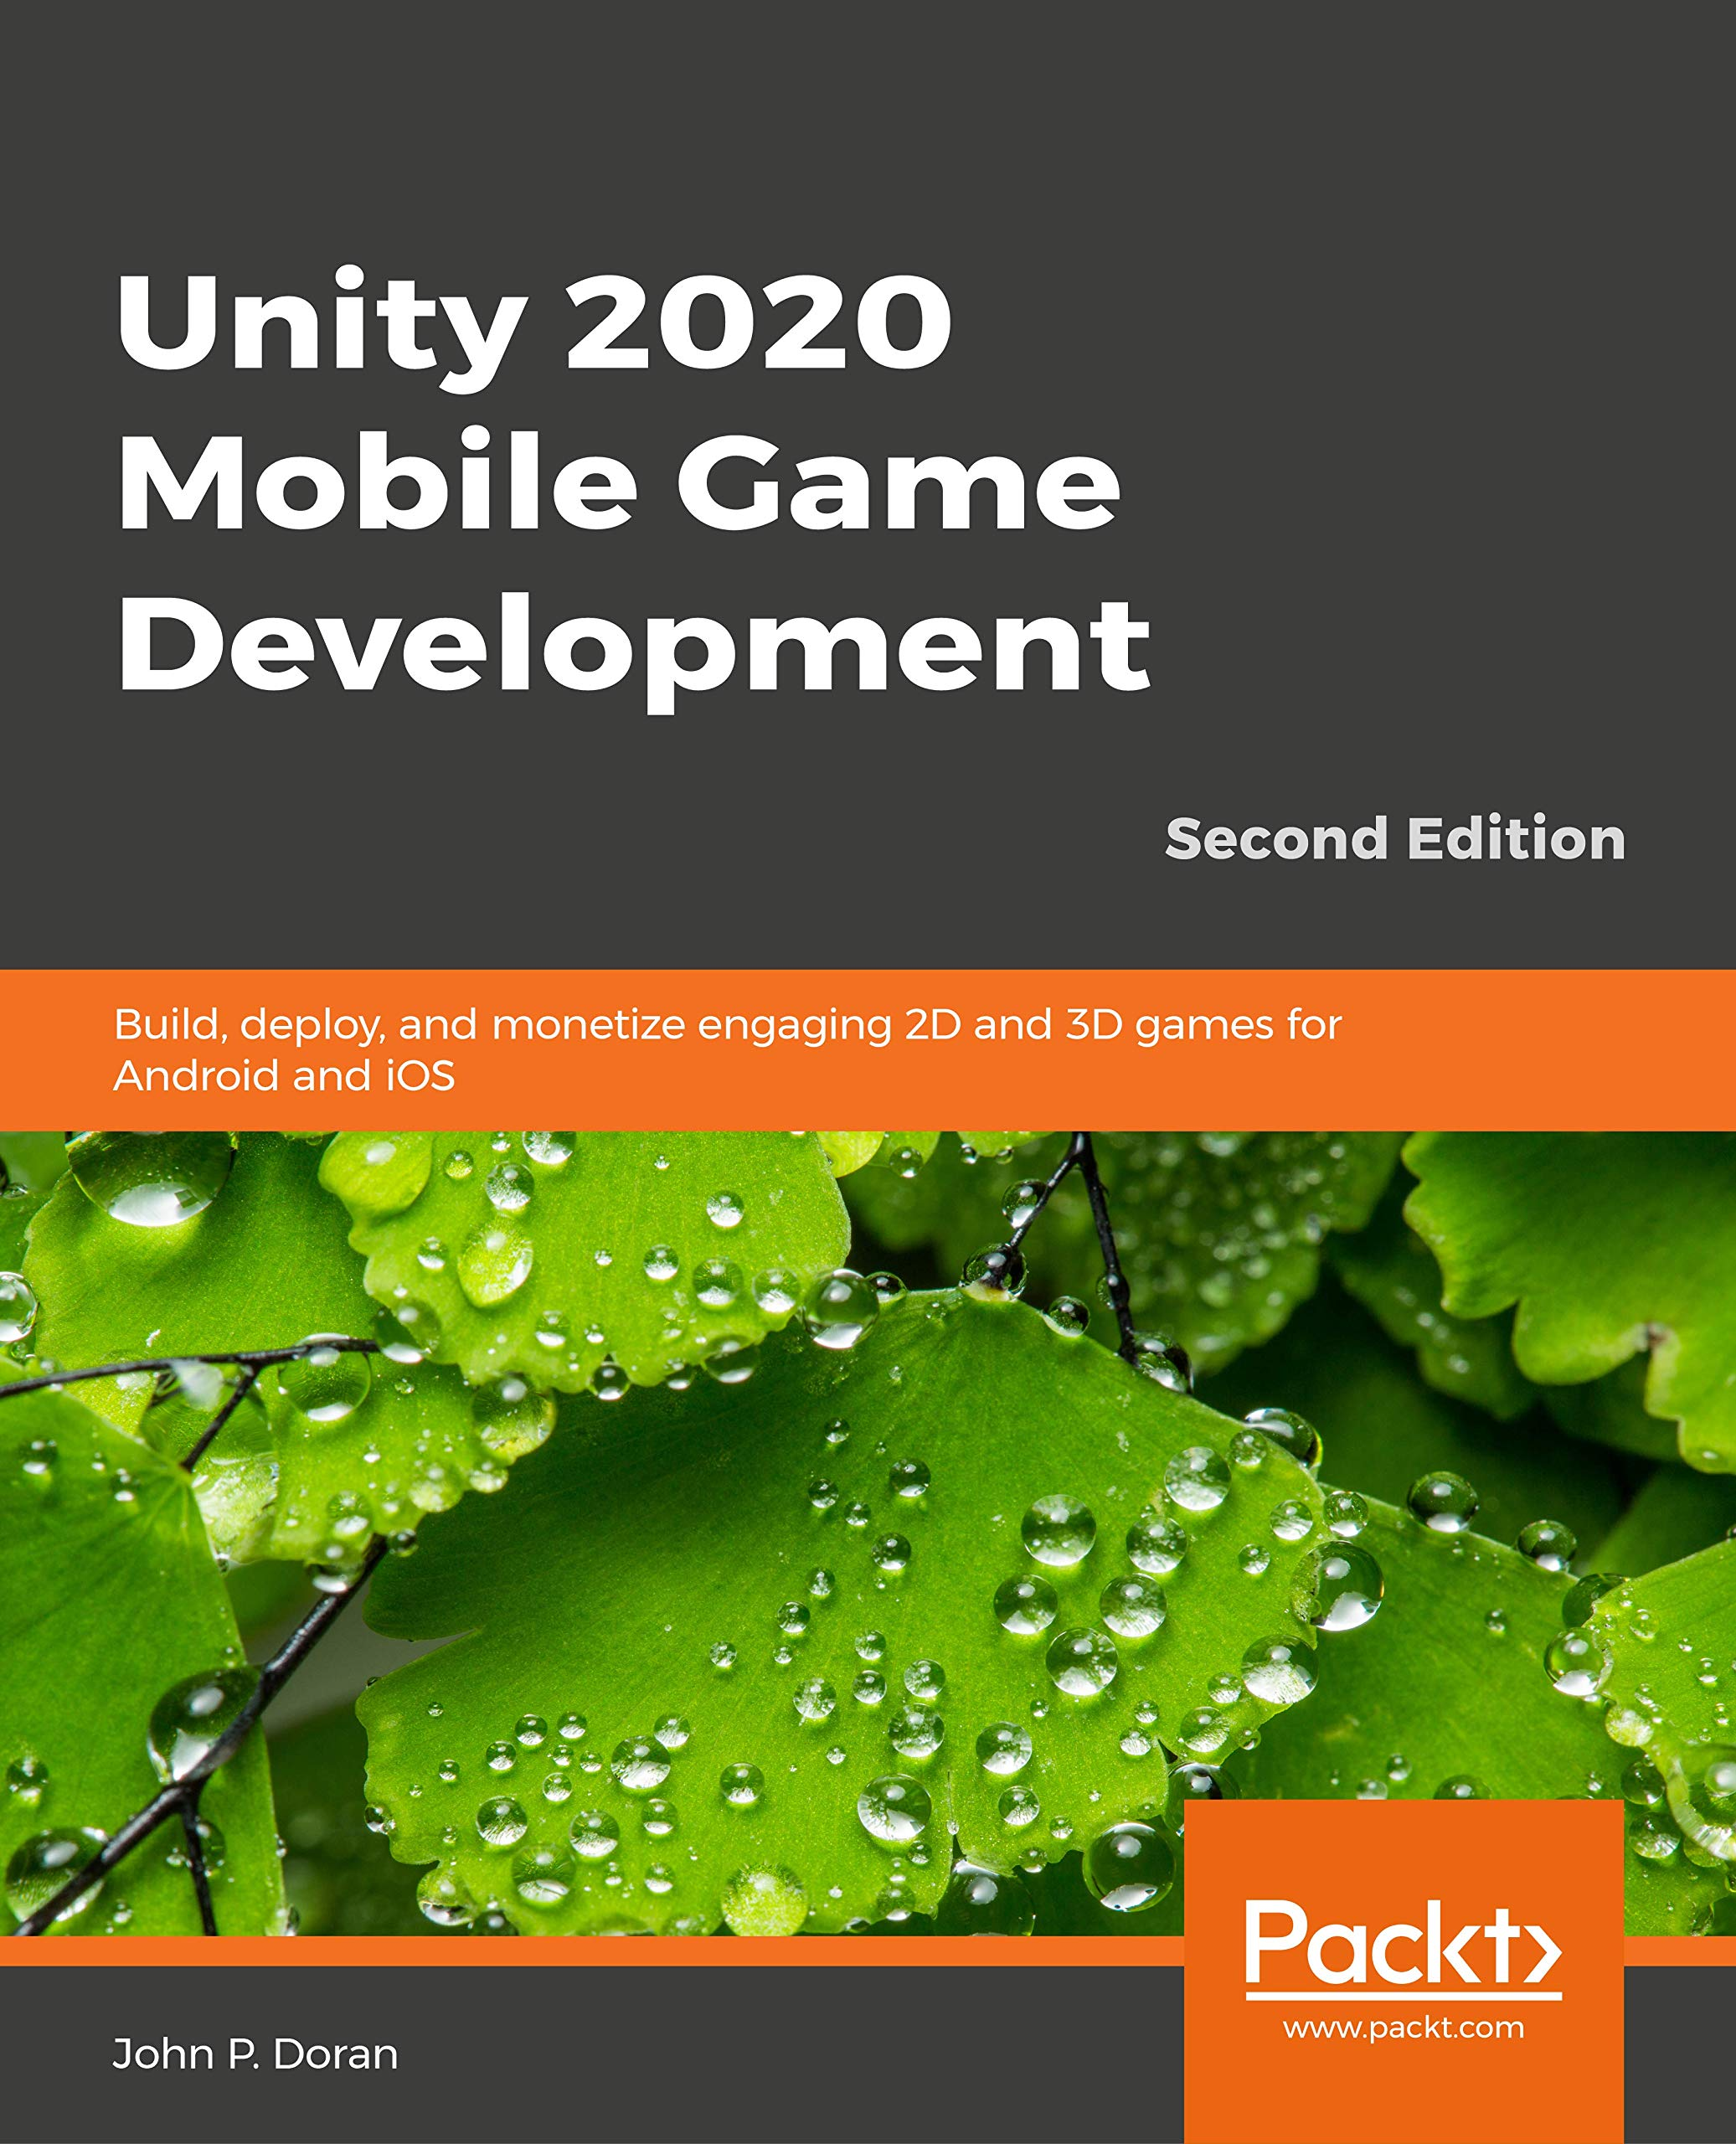 Unity 2020 Mobile Game Development - Second Edition: Build, deploy, and monetize engaging 2D and 3D games for Android and iOS